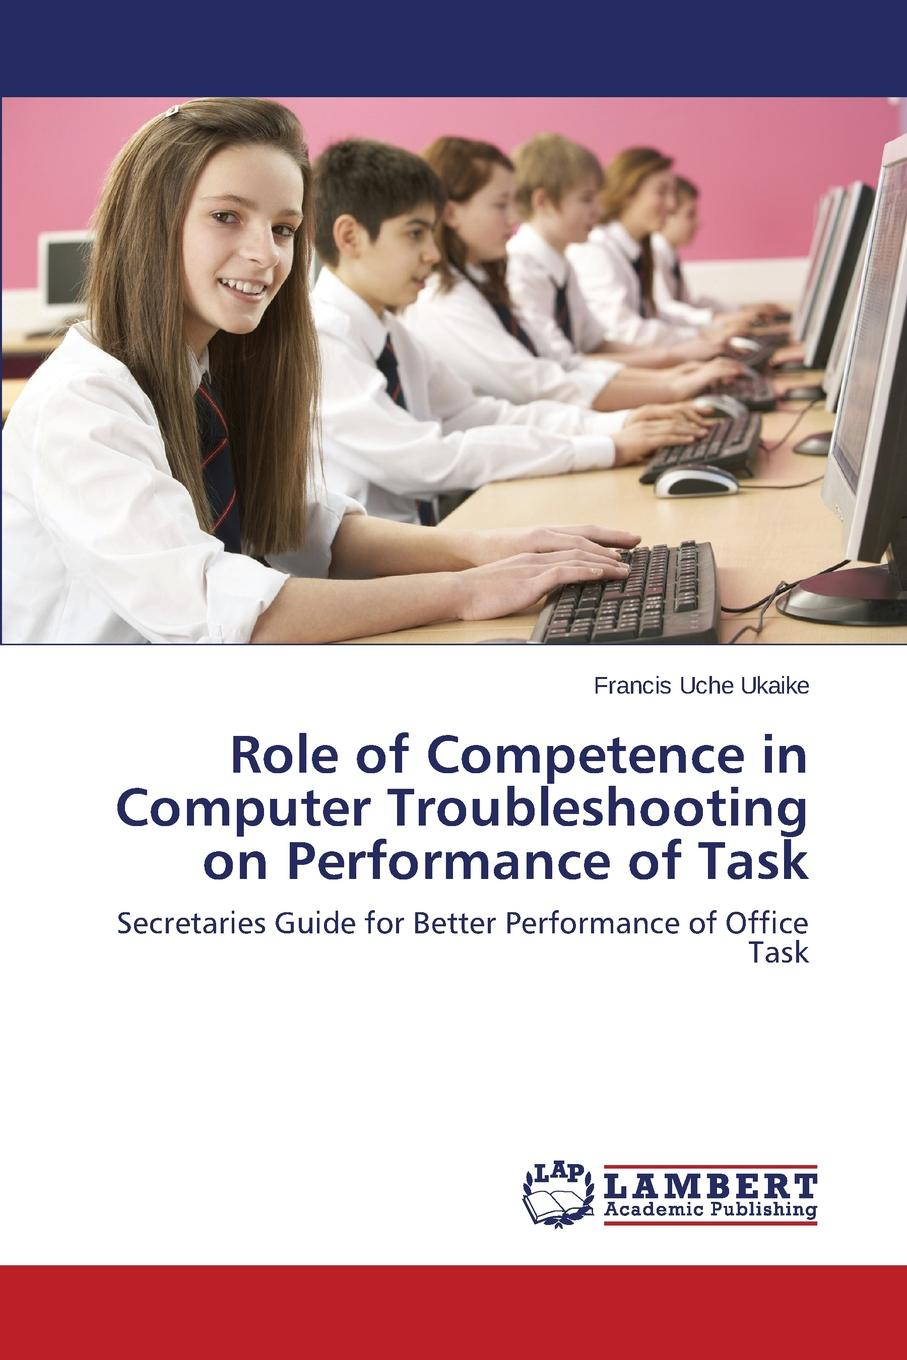 Uche Ukaike Francis Role of Competence in Computer Troubleshooting on Performance of Task computer office office electronics printer supplies ink cartridges g